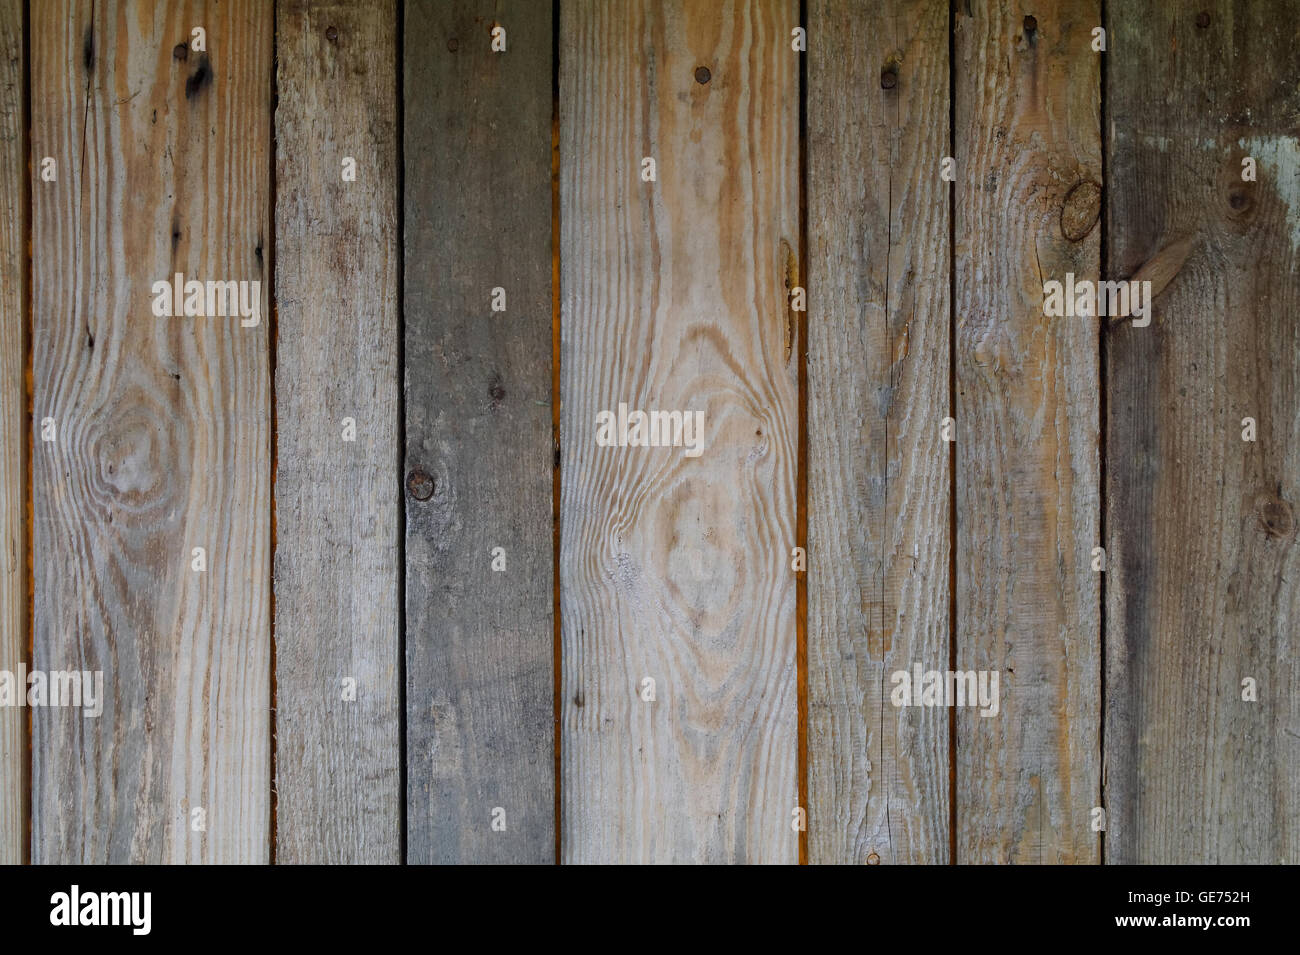 old rough knaggy weathered planks as texture - Stock Image